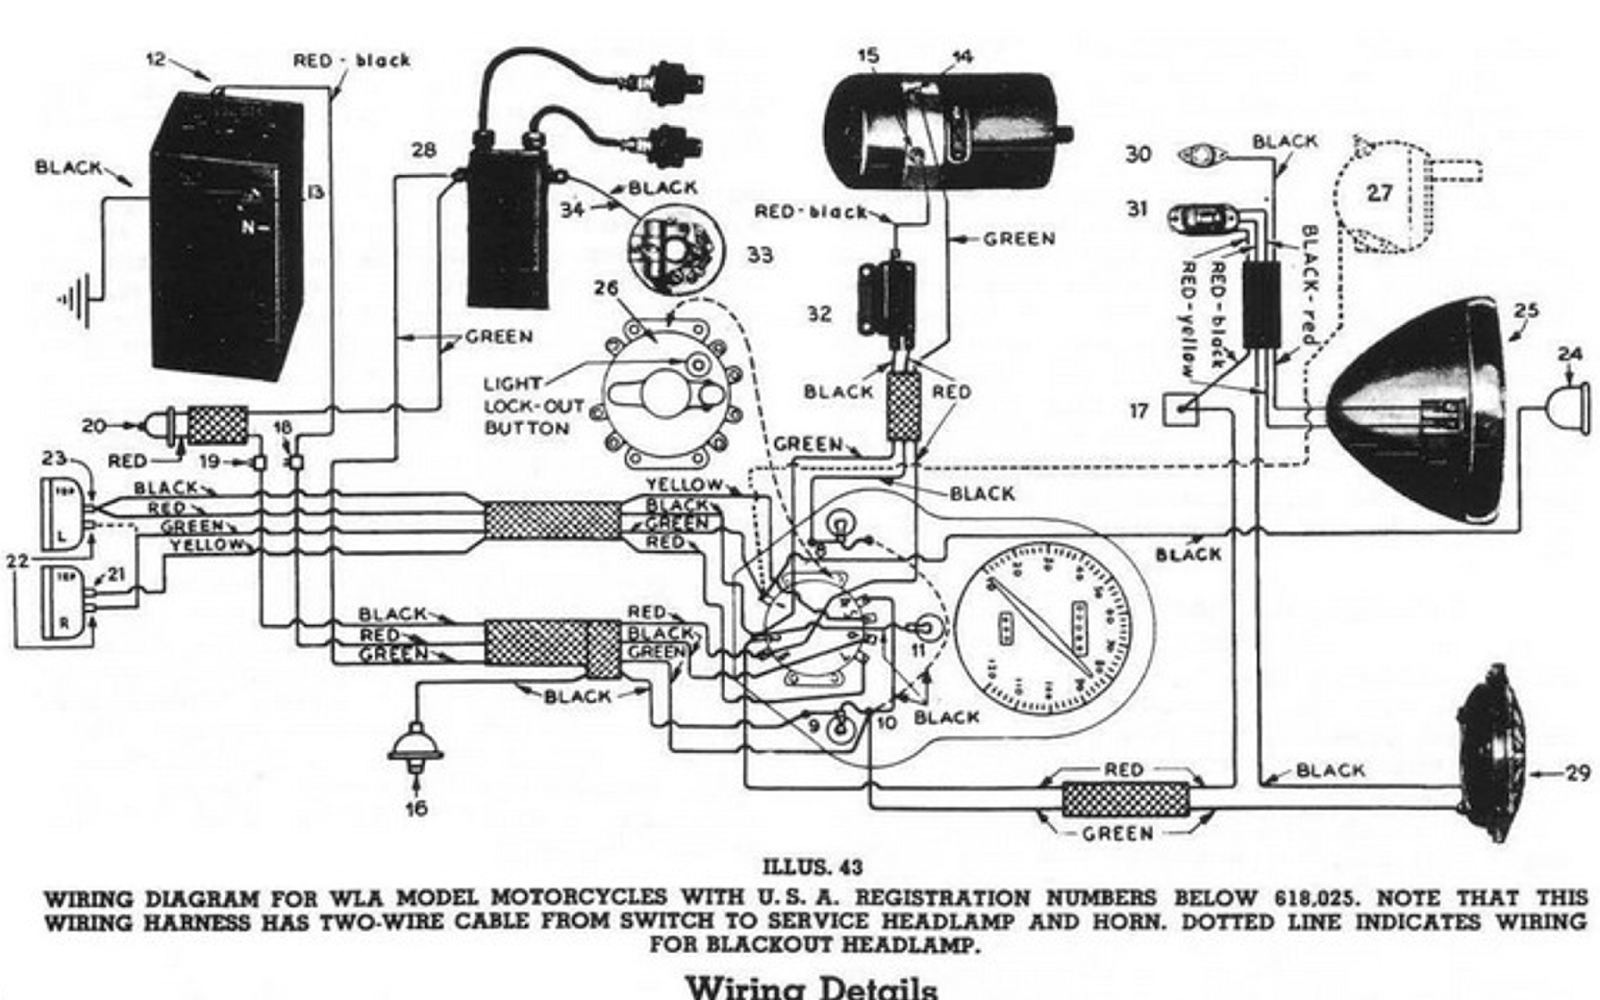 Wiring Diagram Harley Davidson - Wiring Diagram Expert on harley evo clutch, harley evo engine rebuild, harley evo oiling system, harley evo upgrades, harley evo components, harley evo frame, harley evo pipes, harley evo parts, harley evo motors, harley evo ignition, harley evo oil, harley evo stator, harley evo charging system, harley evo power, harley evo heads, harley evo maintenance, harley evo tools, harley evo speed sensor, harley evo diagram, harley evo exhaust,